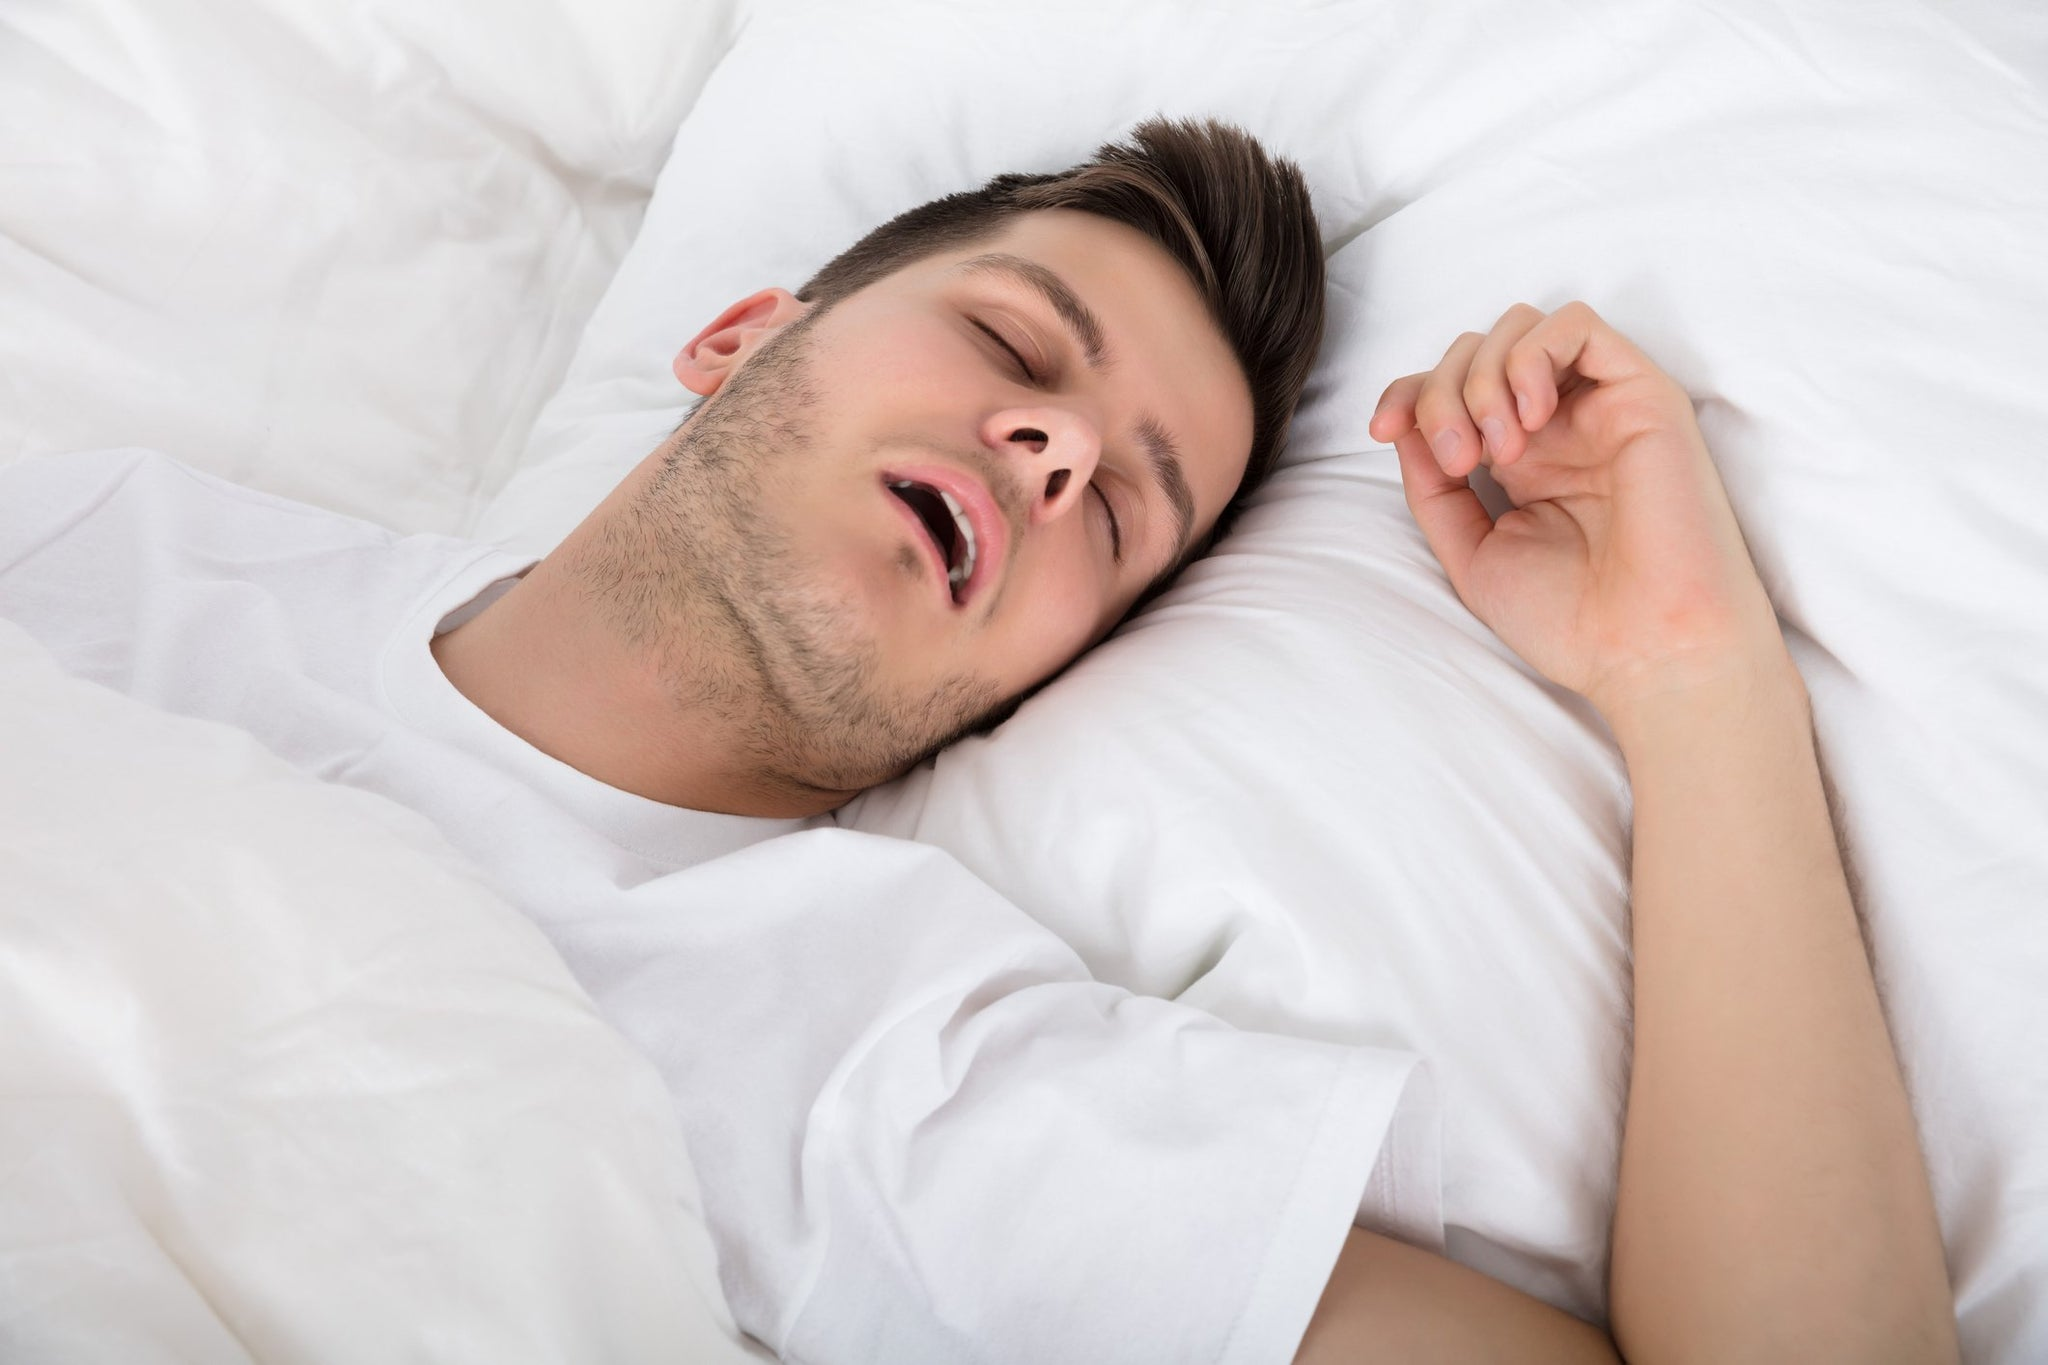 Sleeping With Your Mouth Open